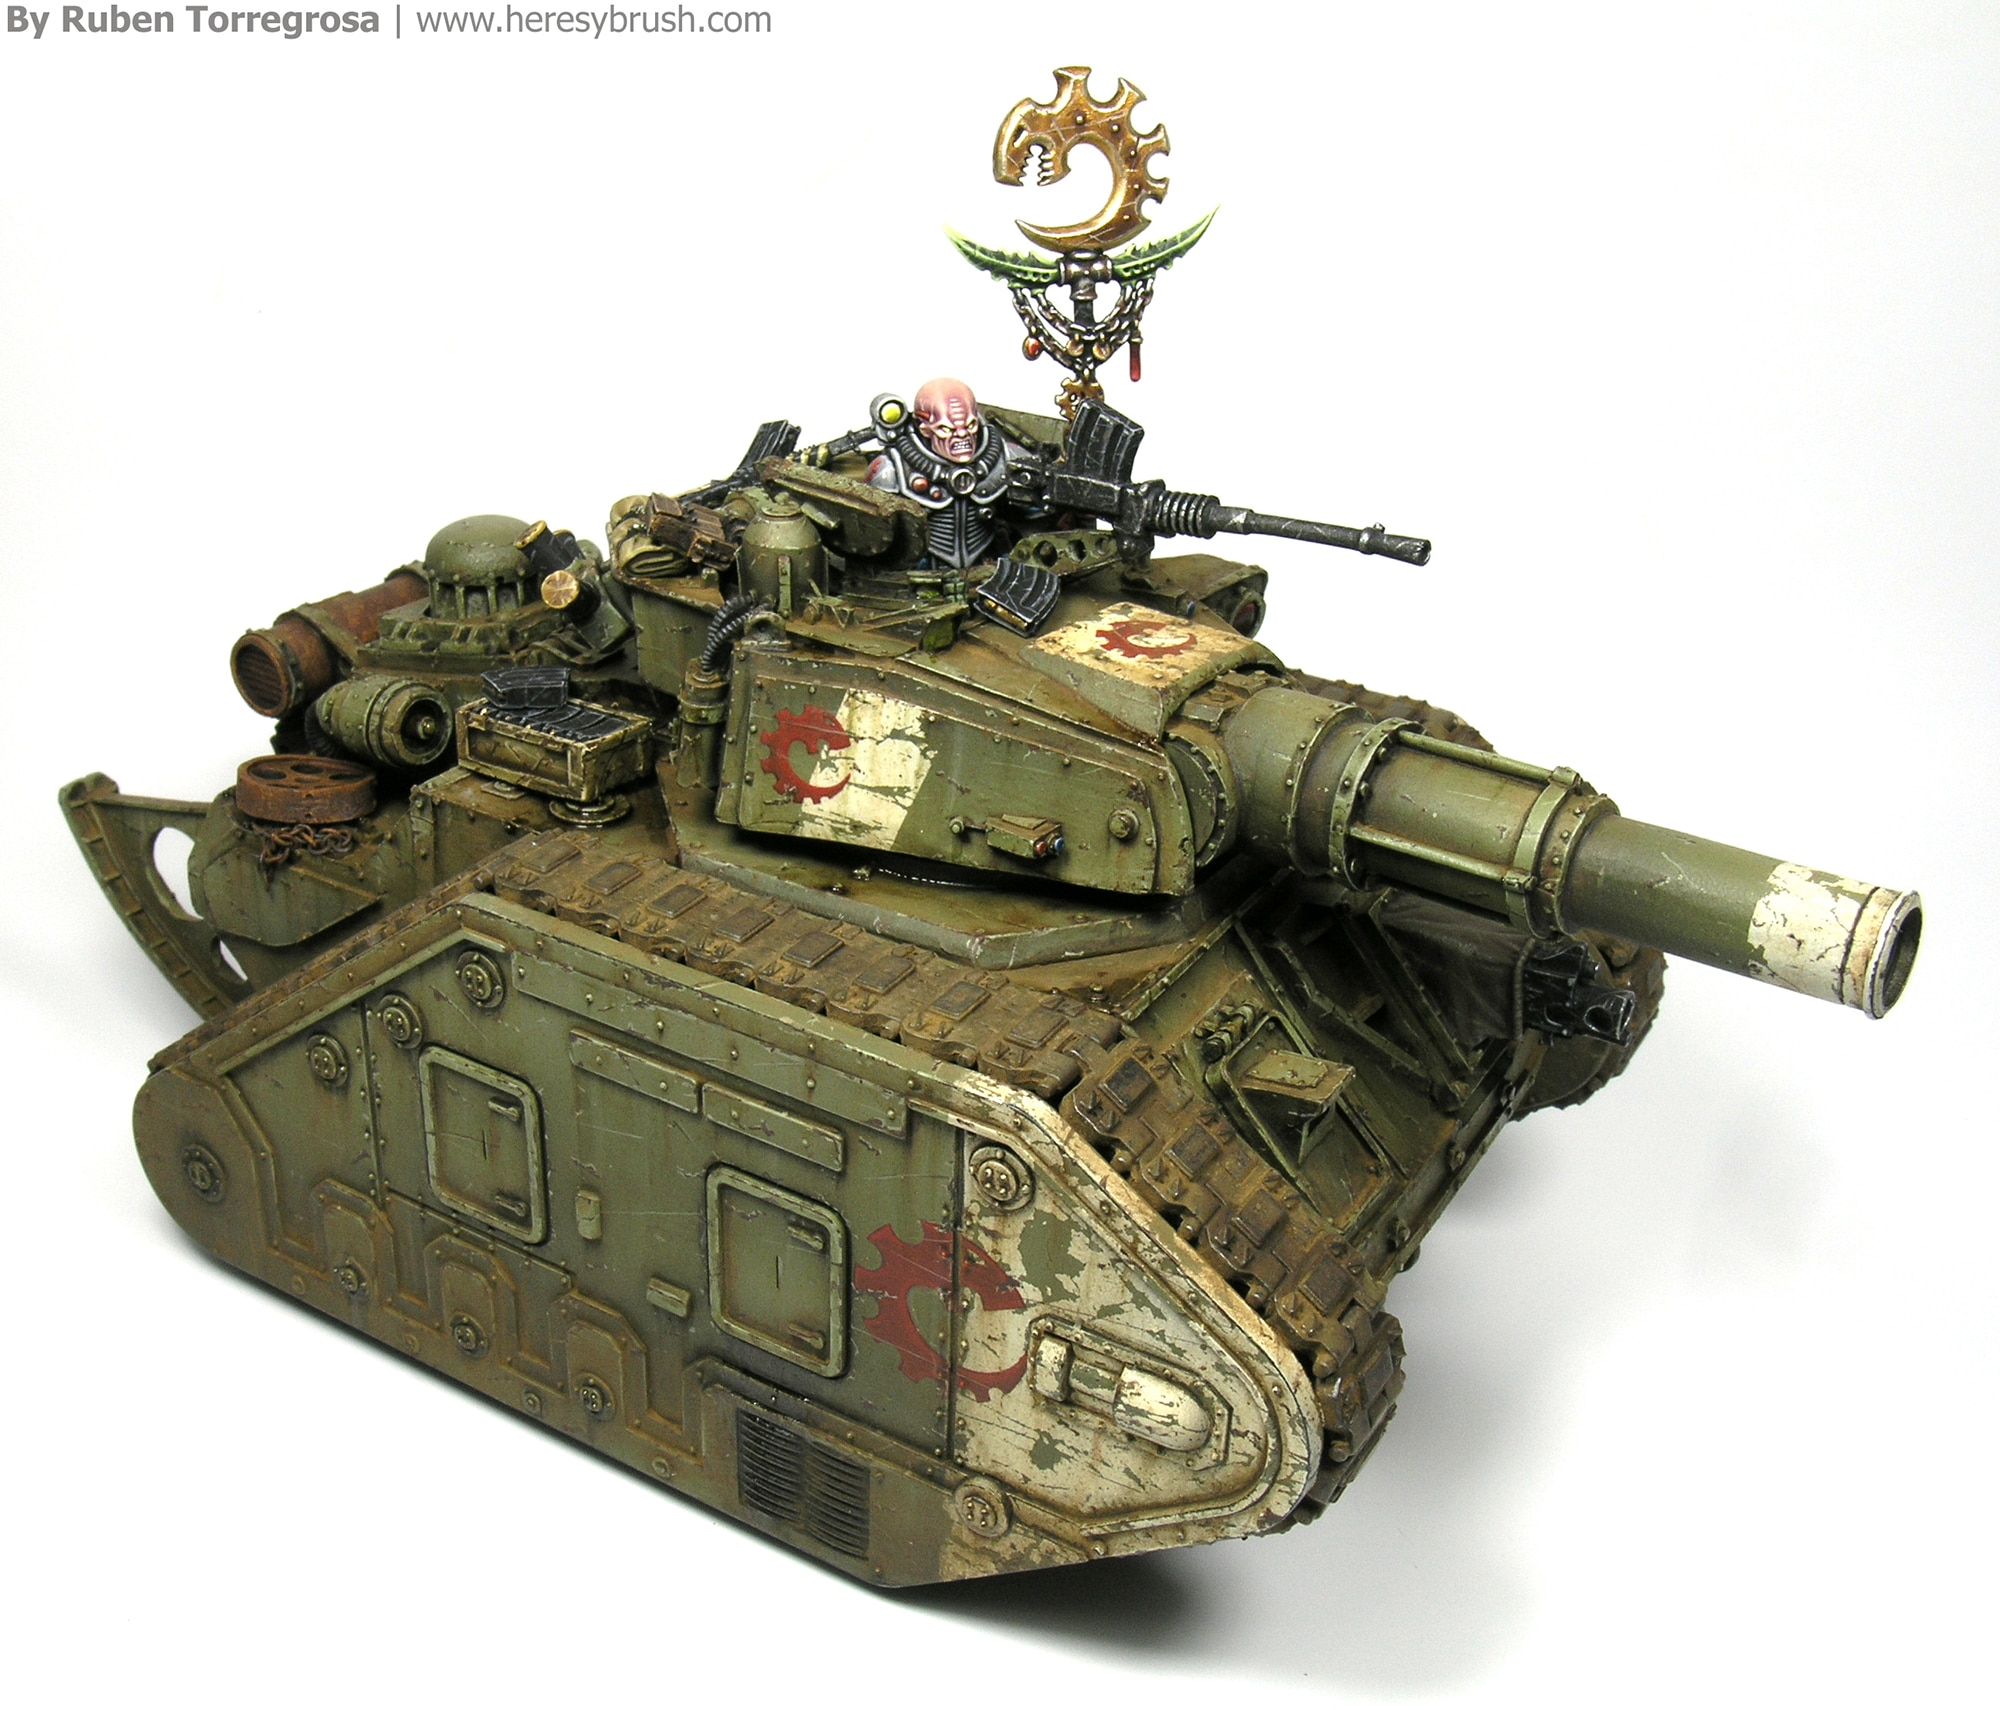 How to paint Warhammer 40.000 tanks with airbrush and weathering techniques